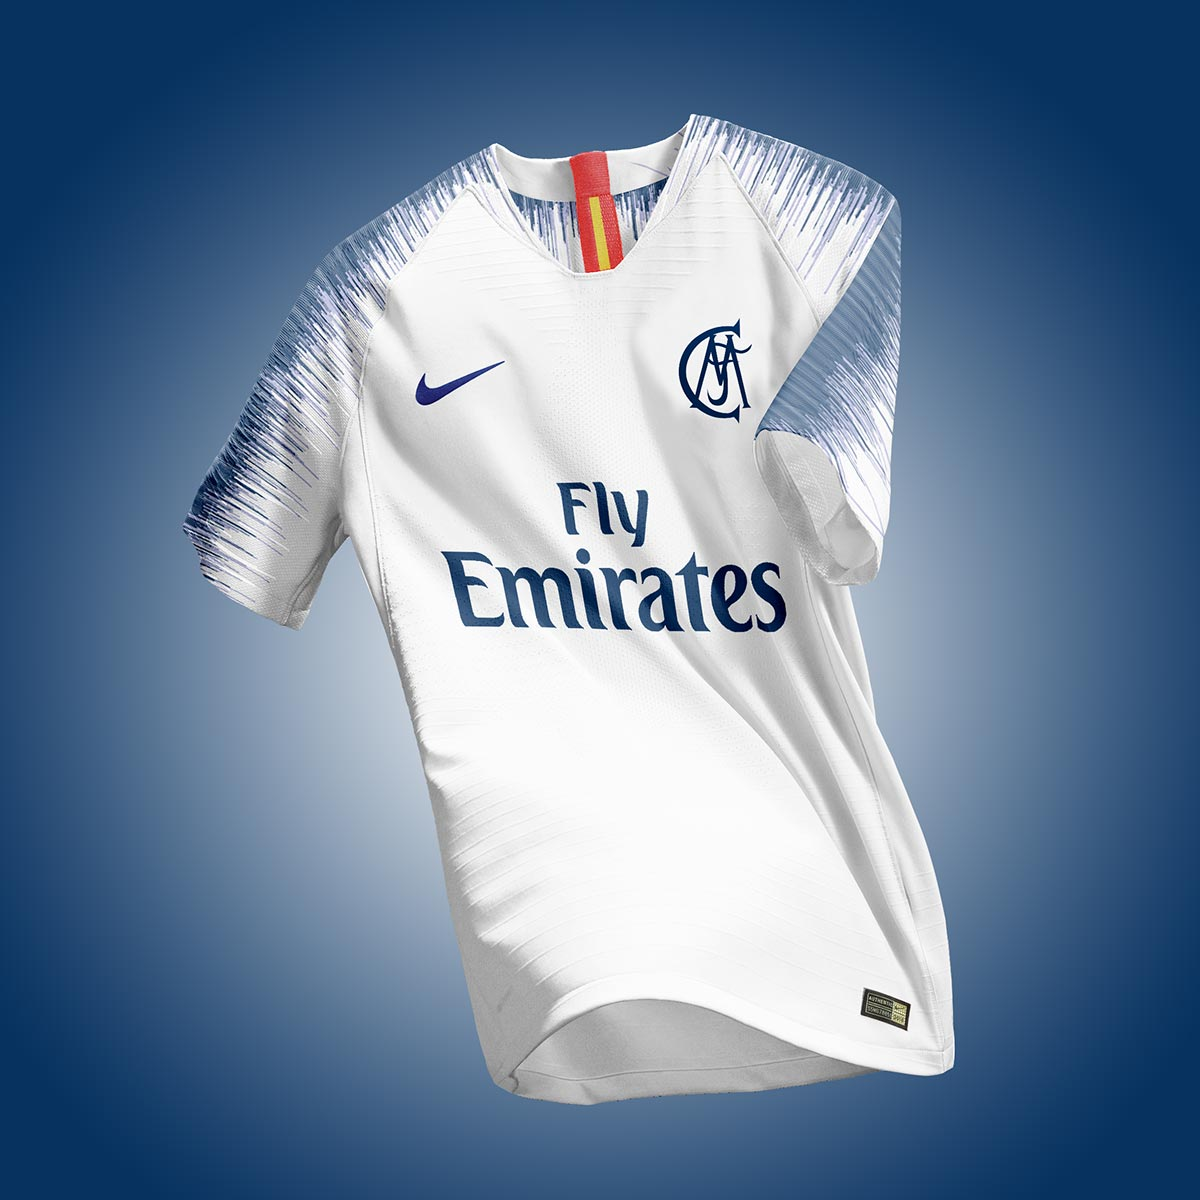 Away Kits If amp; Home 19 Madrid By Nike Real Third 18 Concept What O4Fw6PnP